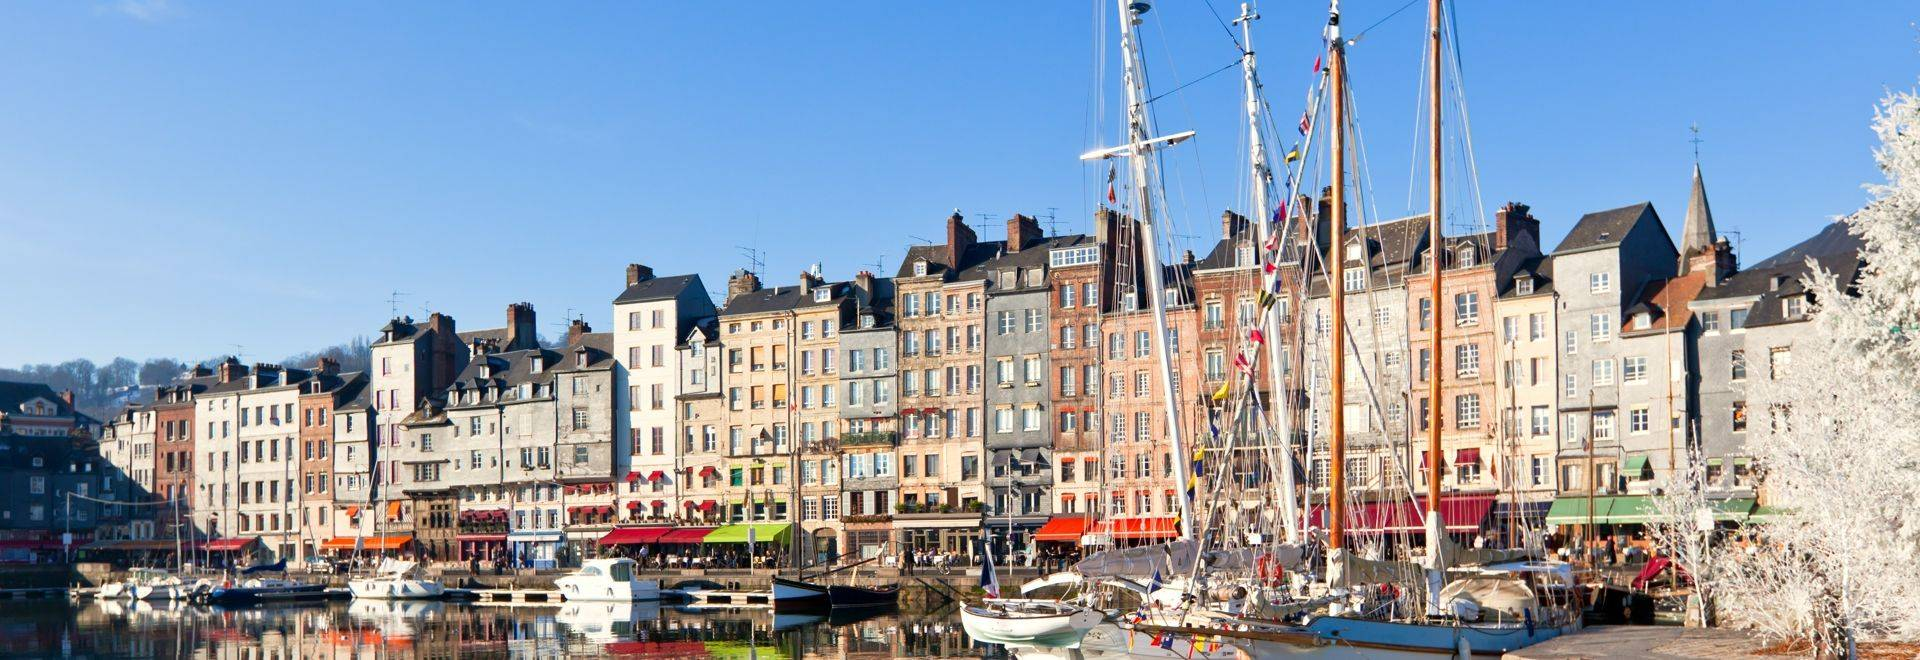 Honfleur harbour in Normandy, France. Color houses and their reflection in water.